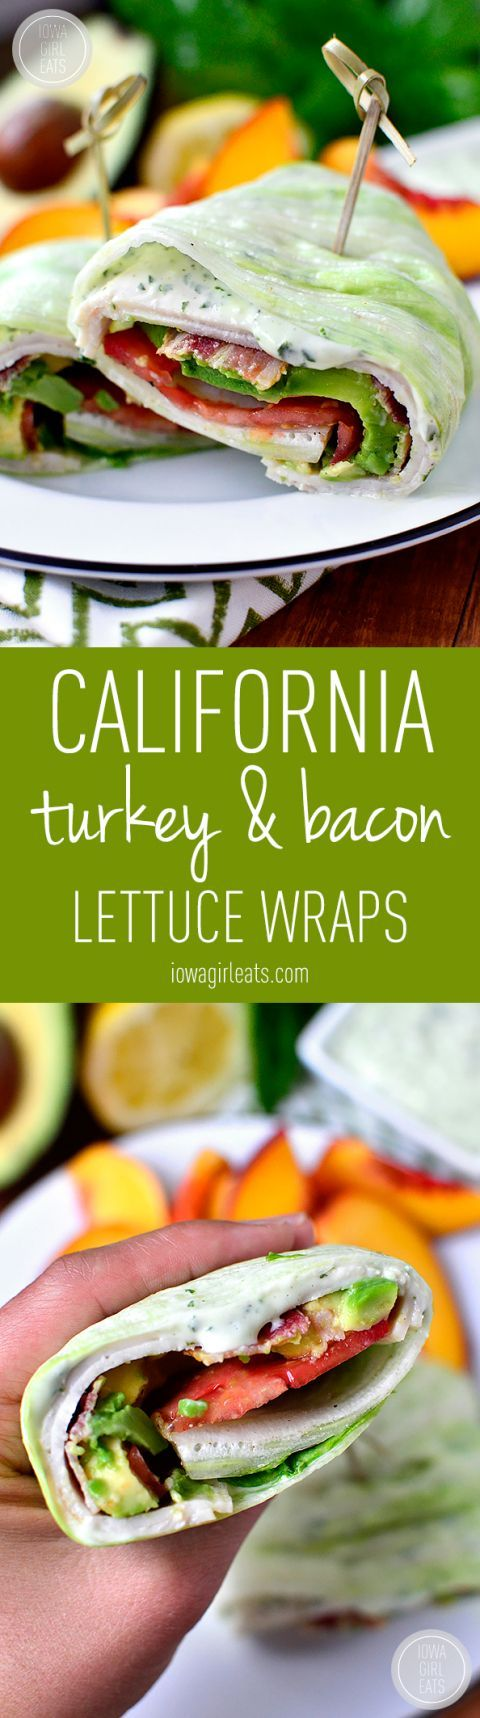 California Turkey and Bacon Lettuce Wraps with Basil-Mayo is a fresh and filling low-carb meal that comes together in minutes! #glutenfree | http://iowagirleats.com